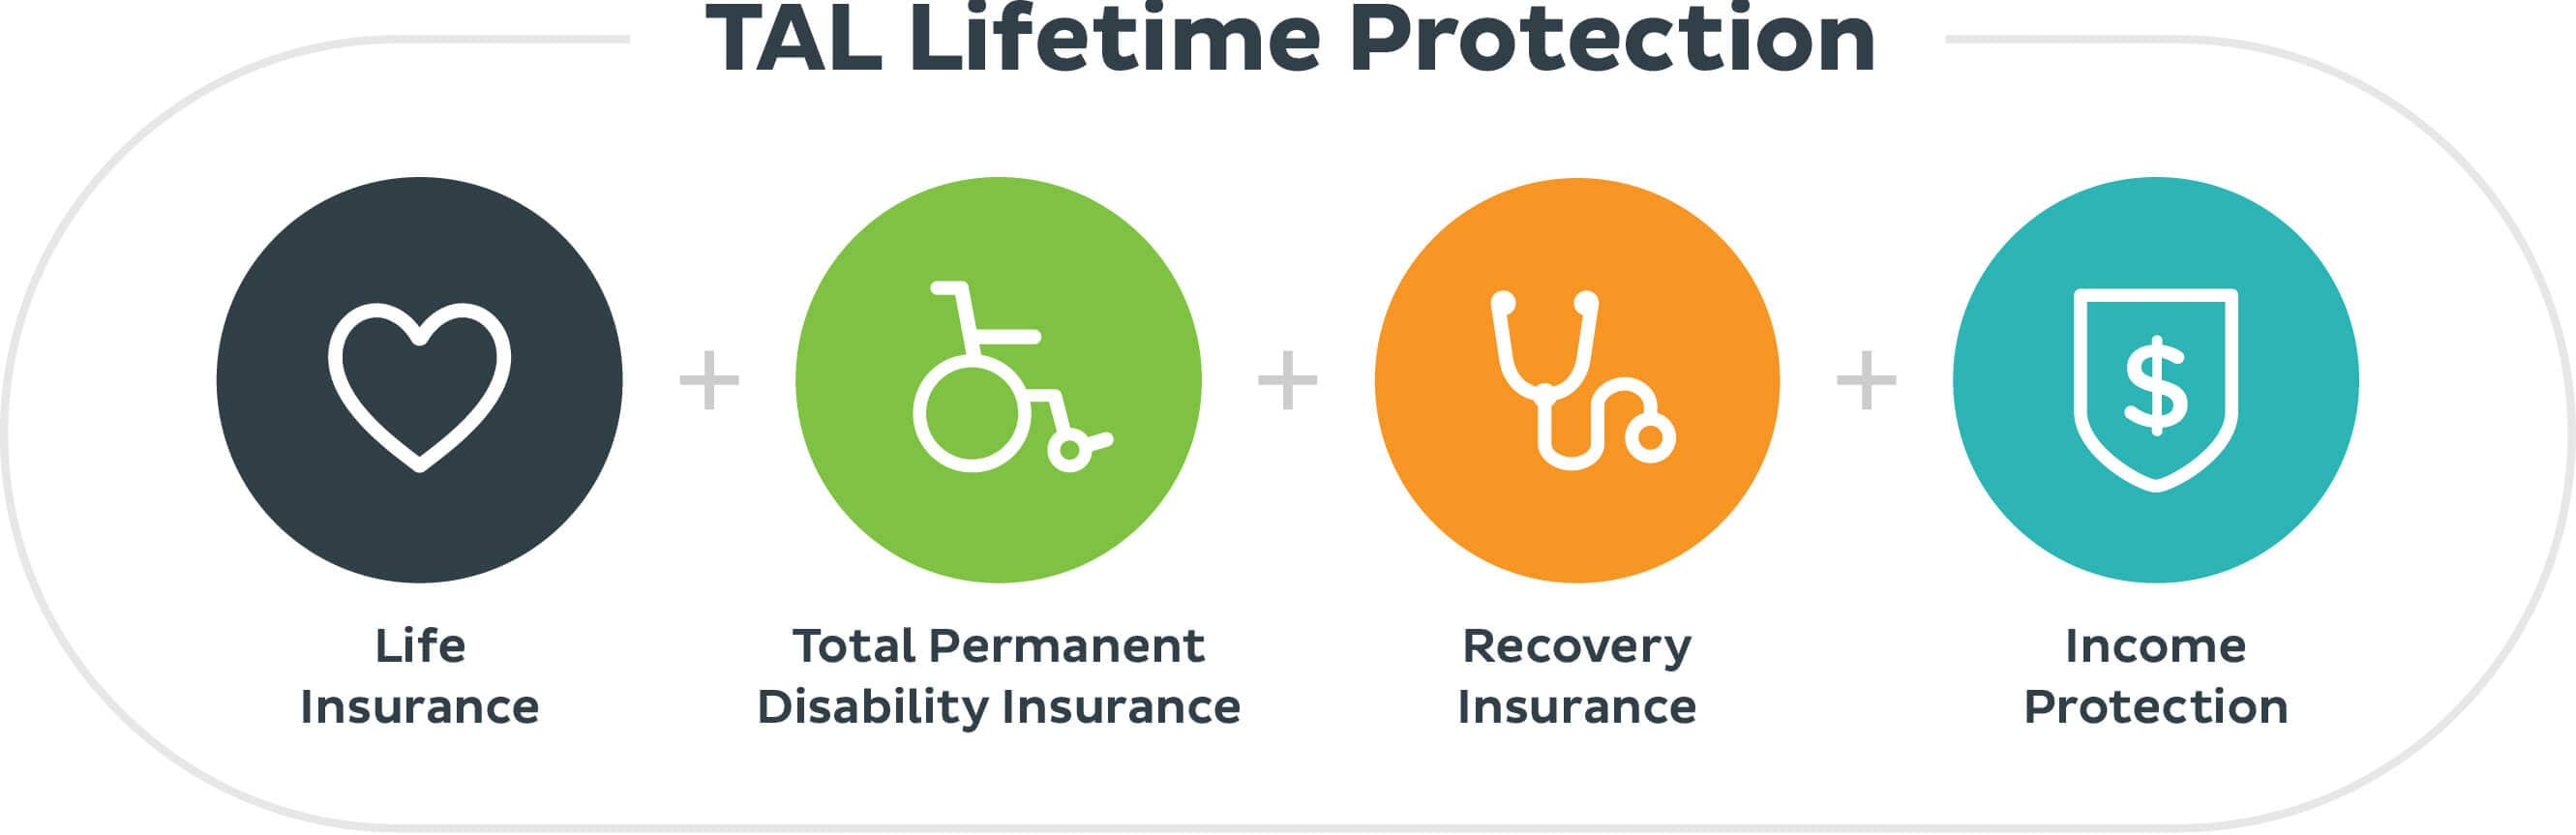 TAL Lifetime Protection insurance plan